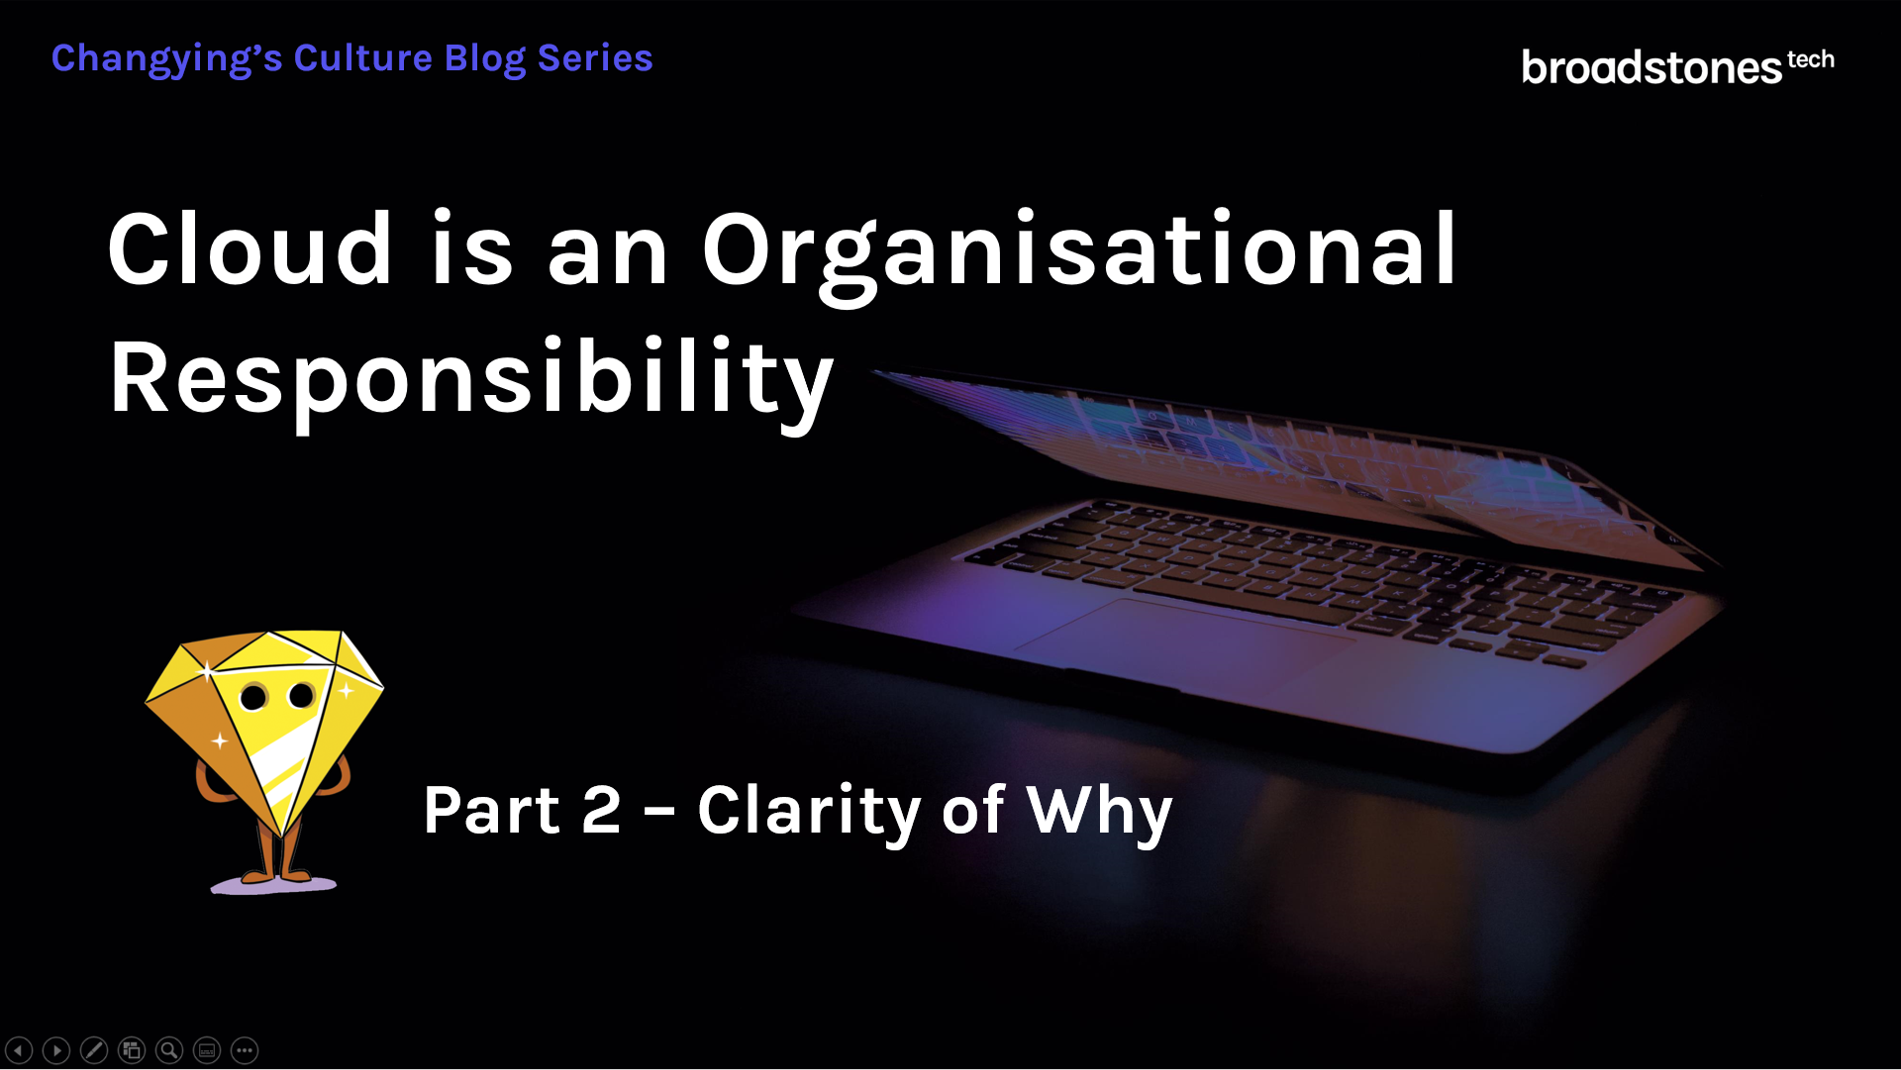 Part 2 Cloud is an Organisational Responibilty - Clarity of Why